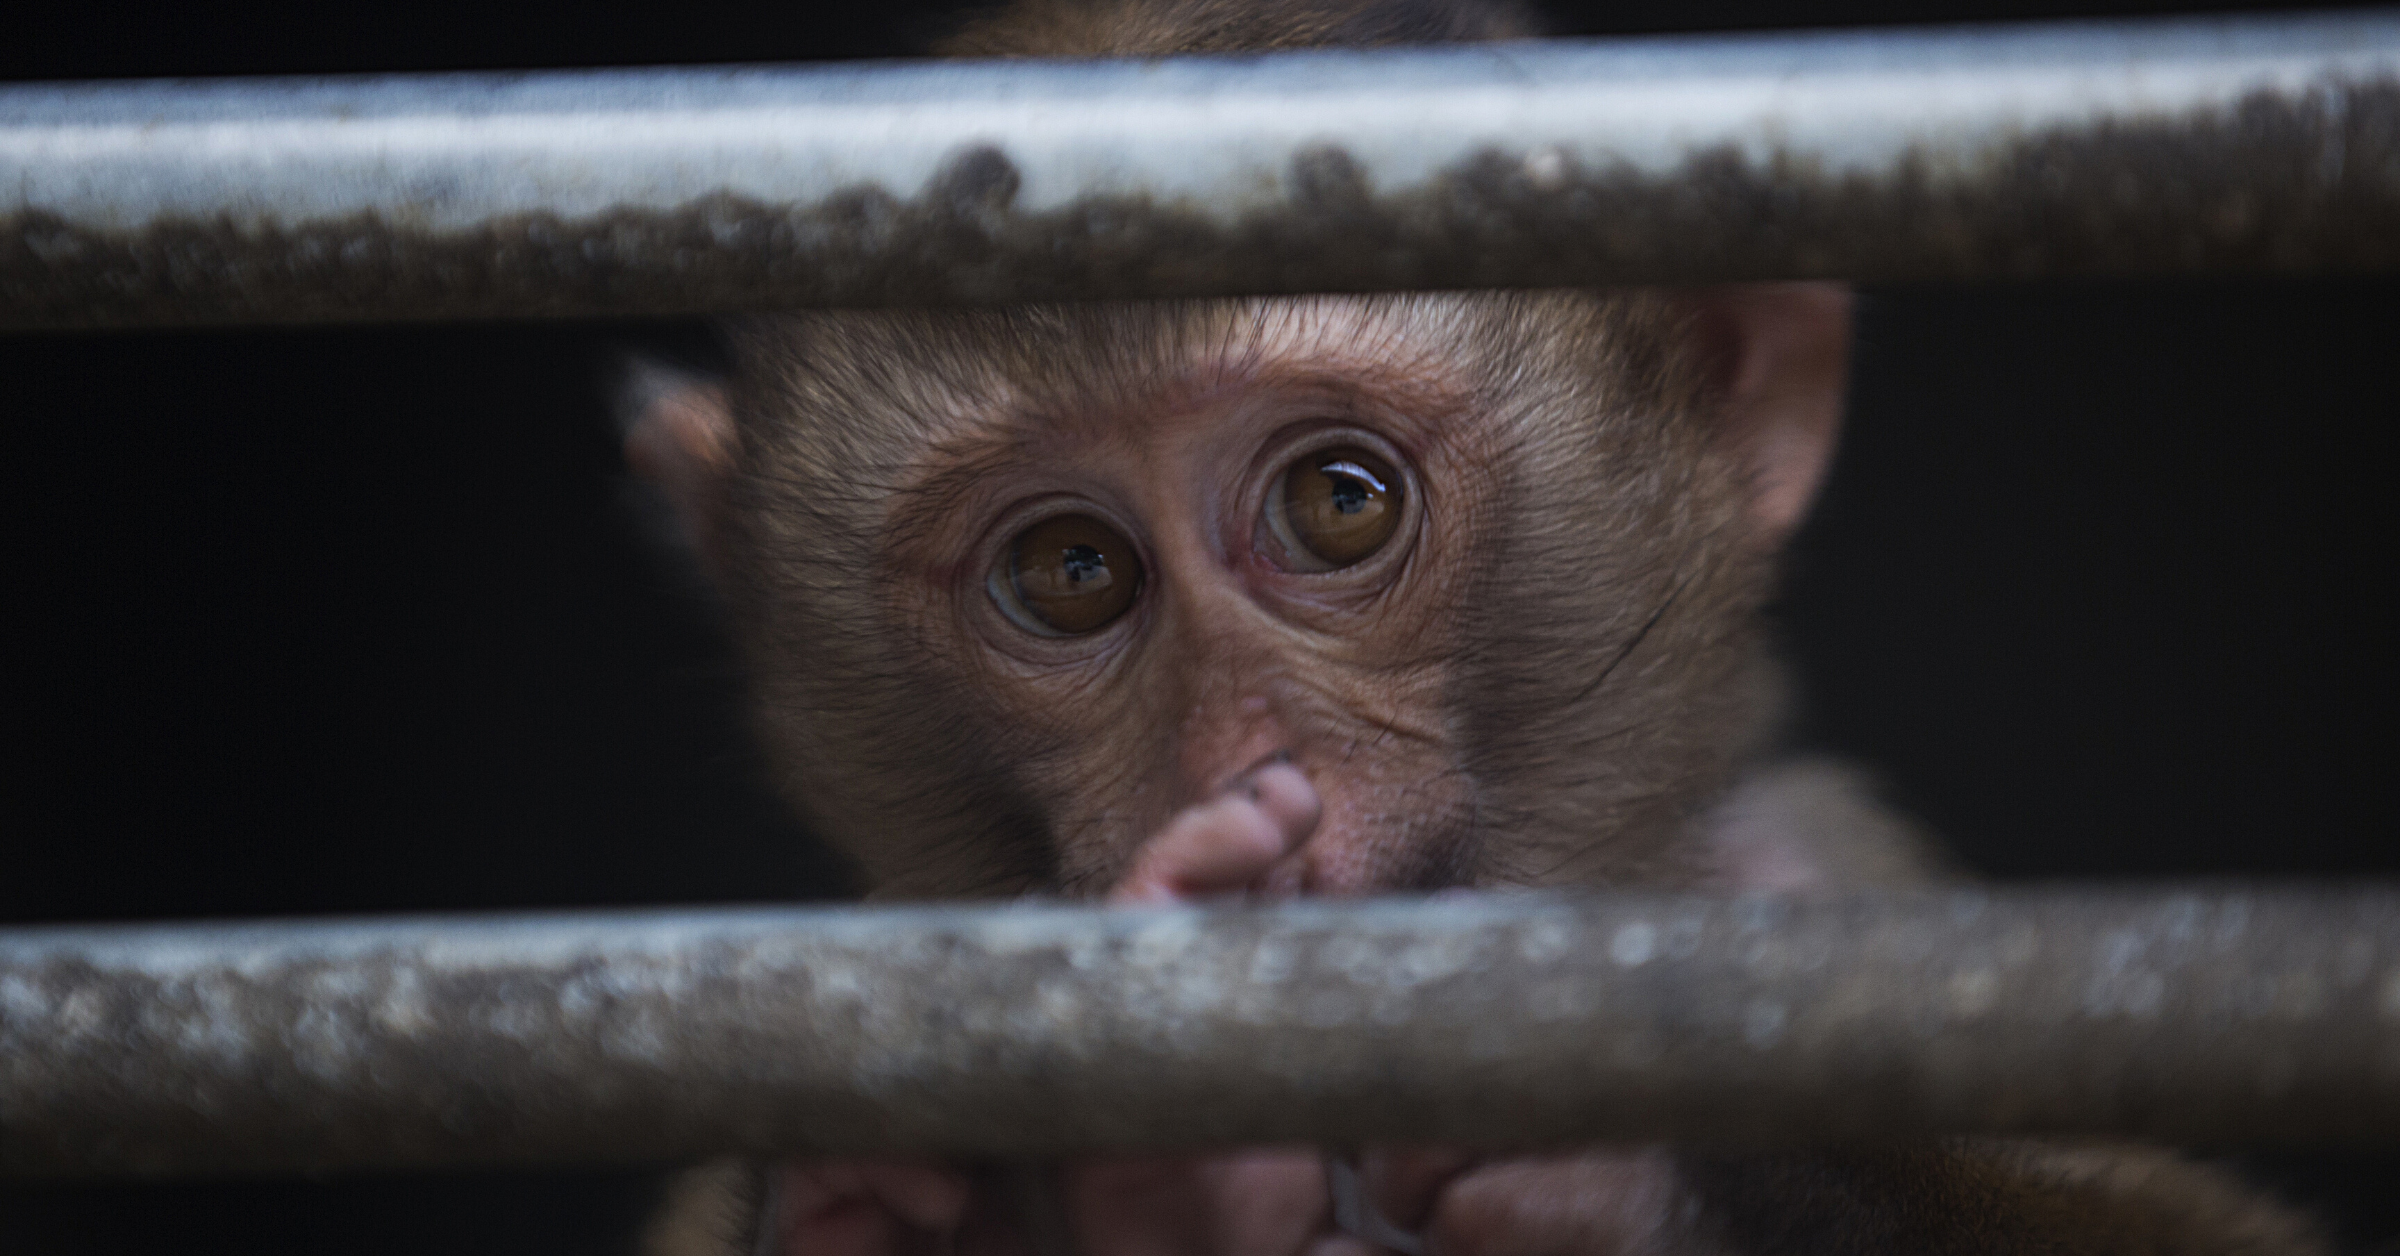 The face of a baby monkey peers between metal cage bars